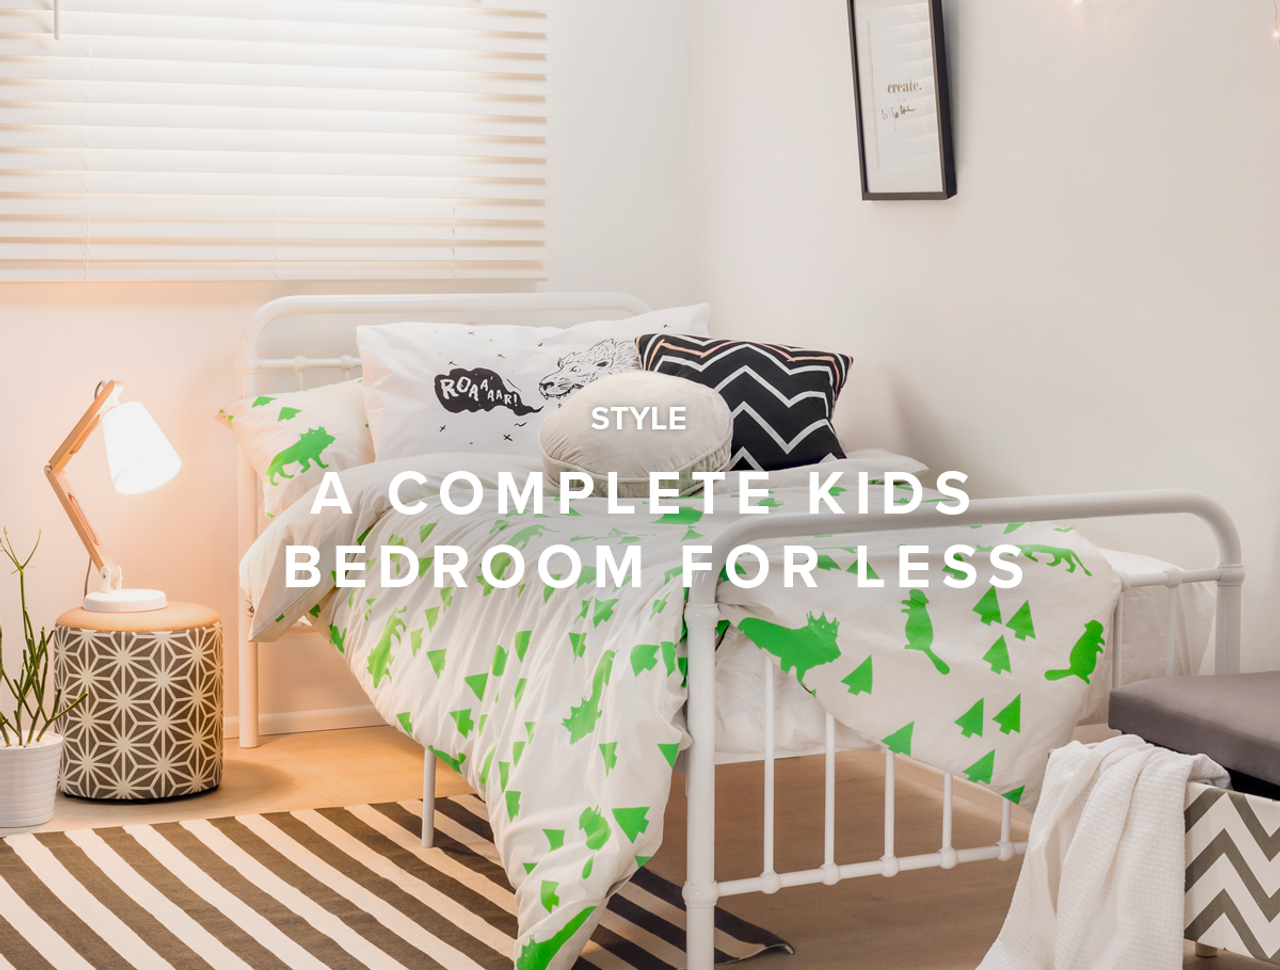 A Complete Kids Bedroom for Less